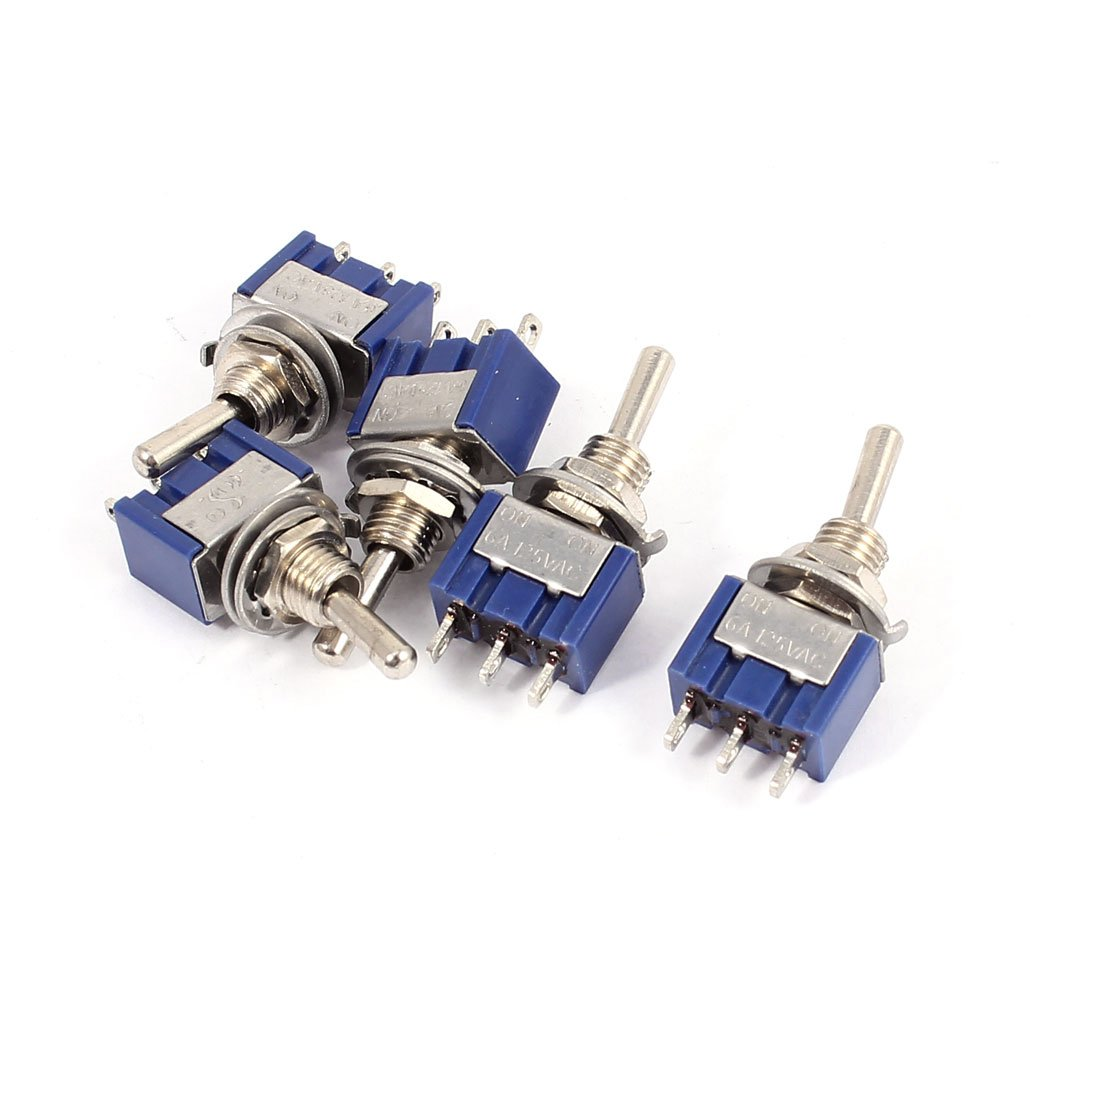 uxcell 10Pcs Latching Rocker Toggle Switch 125V 6A 6P ON-Off-ON MTS-203 Blue